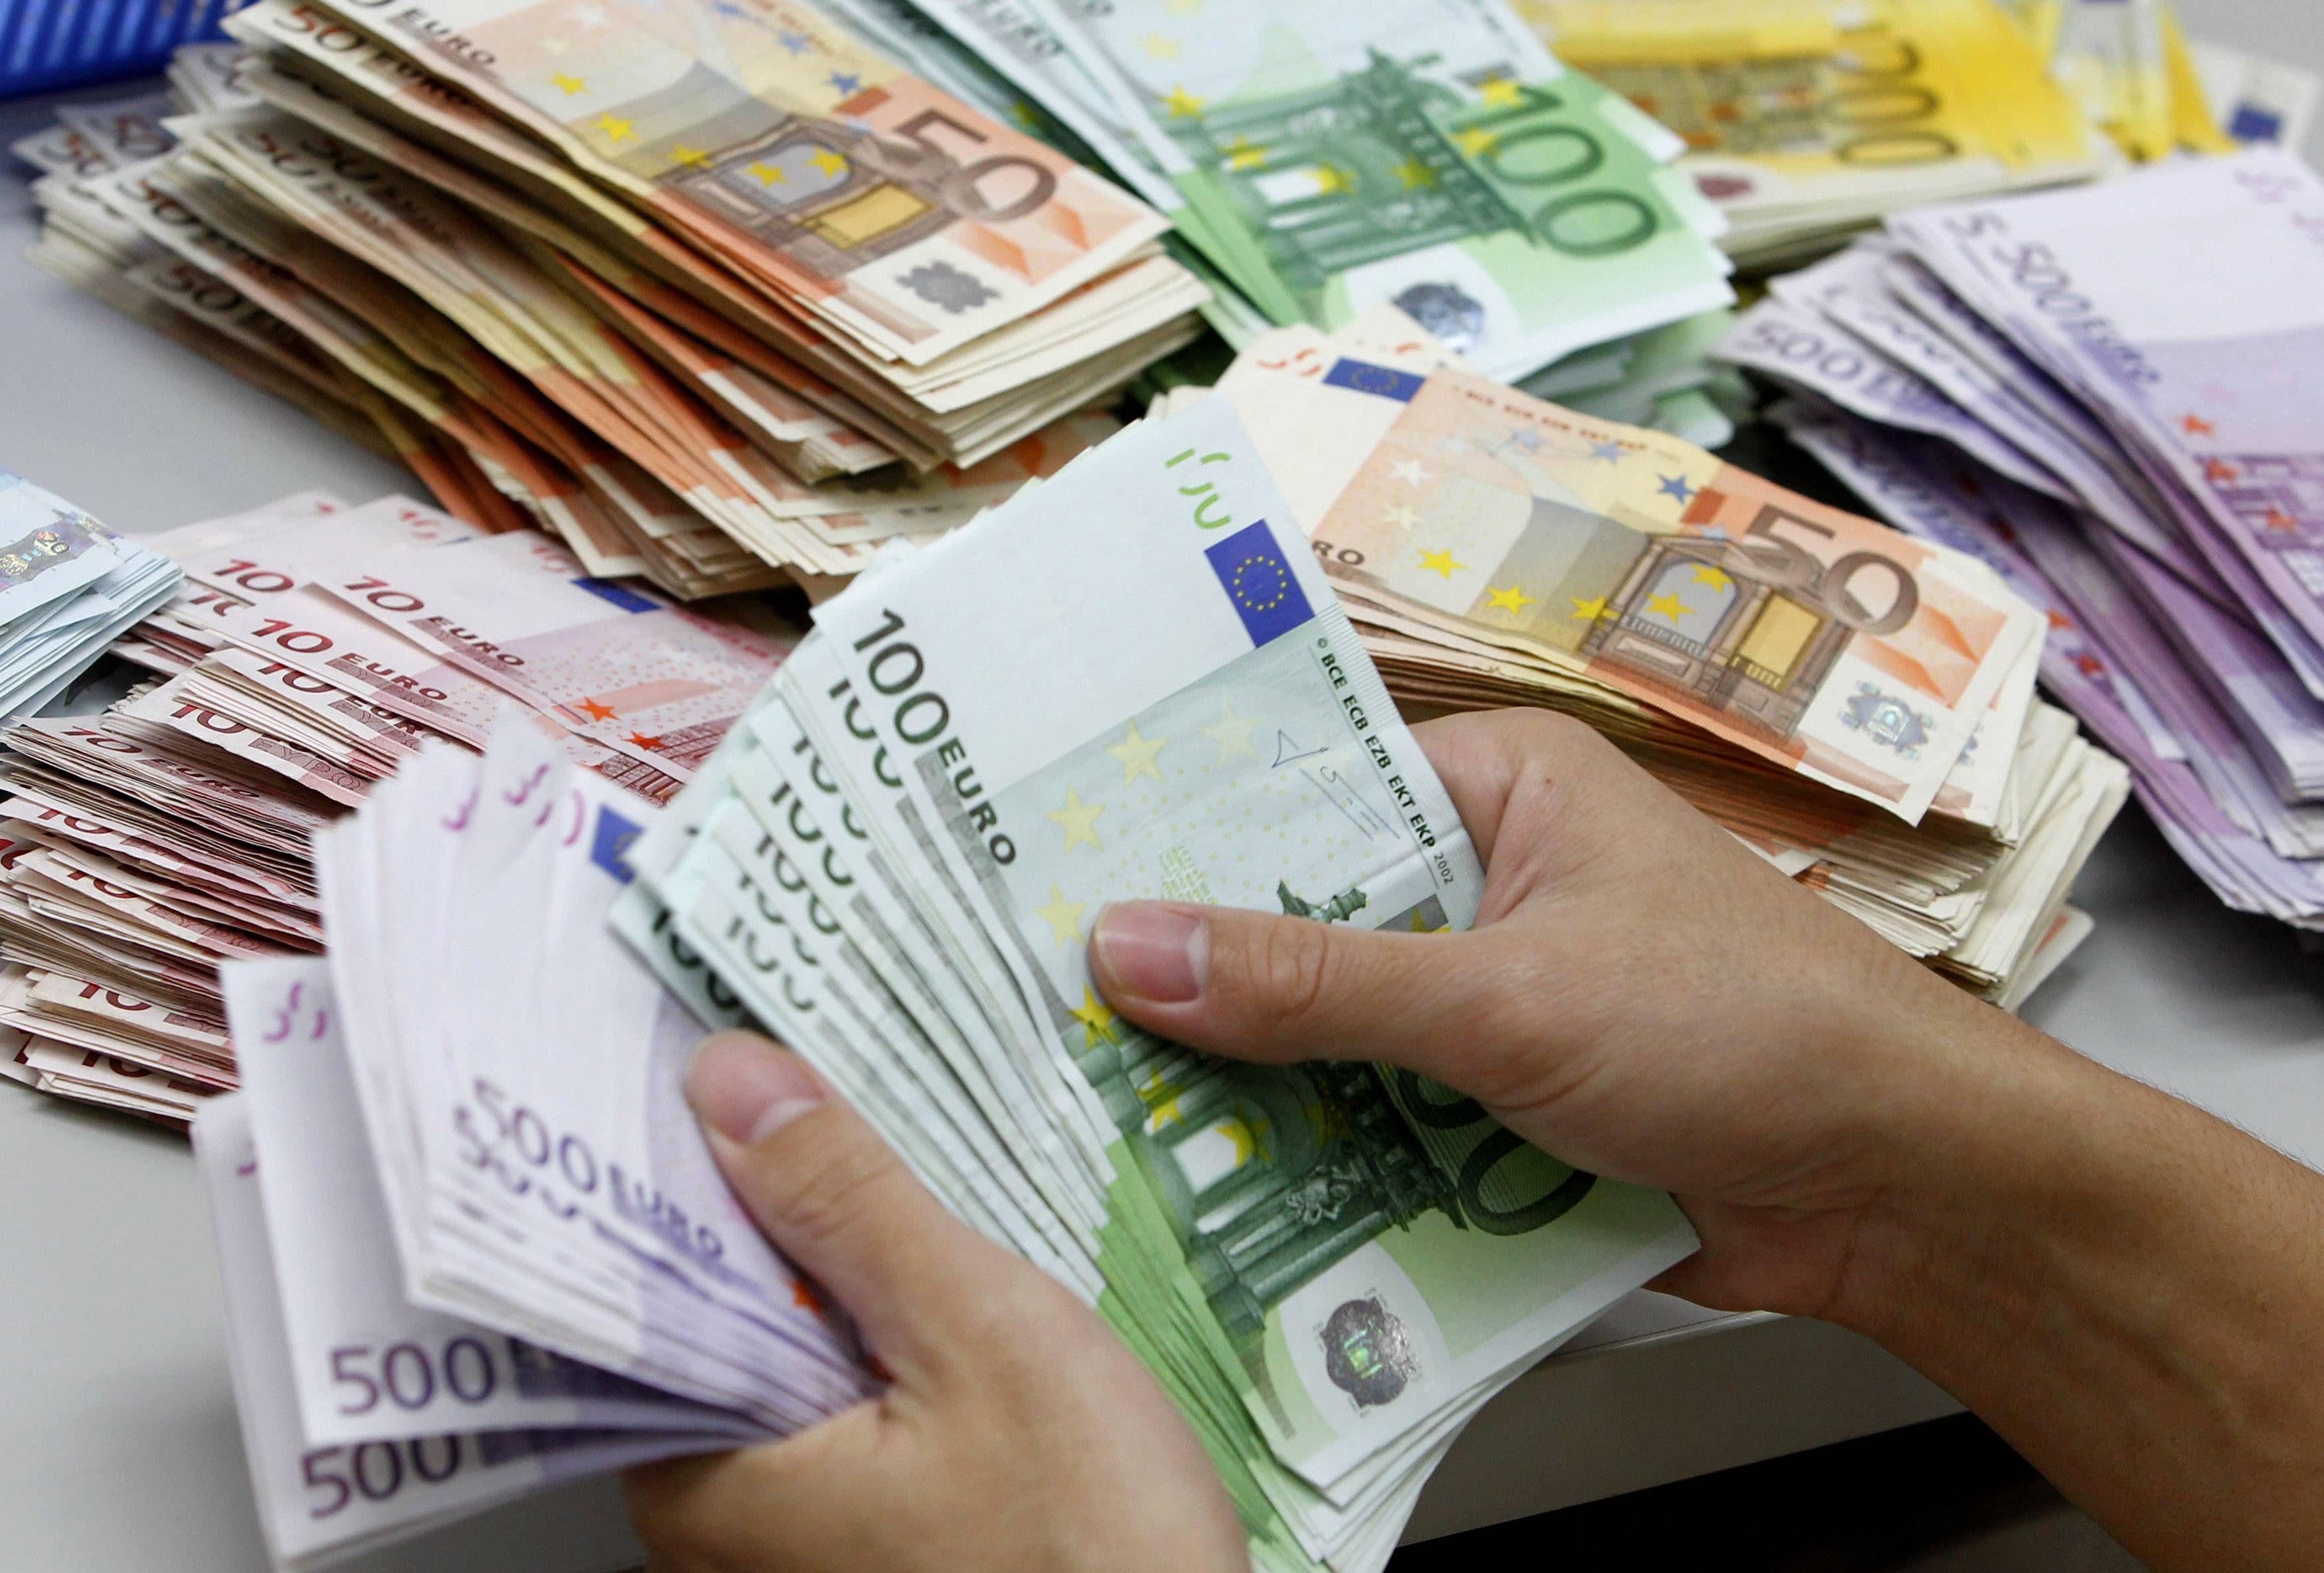 Greeks are champions in the use of cash